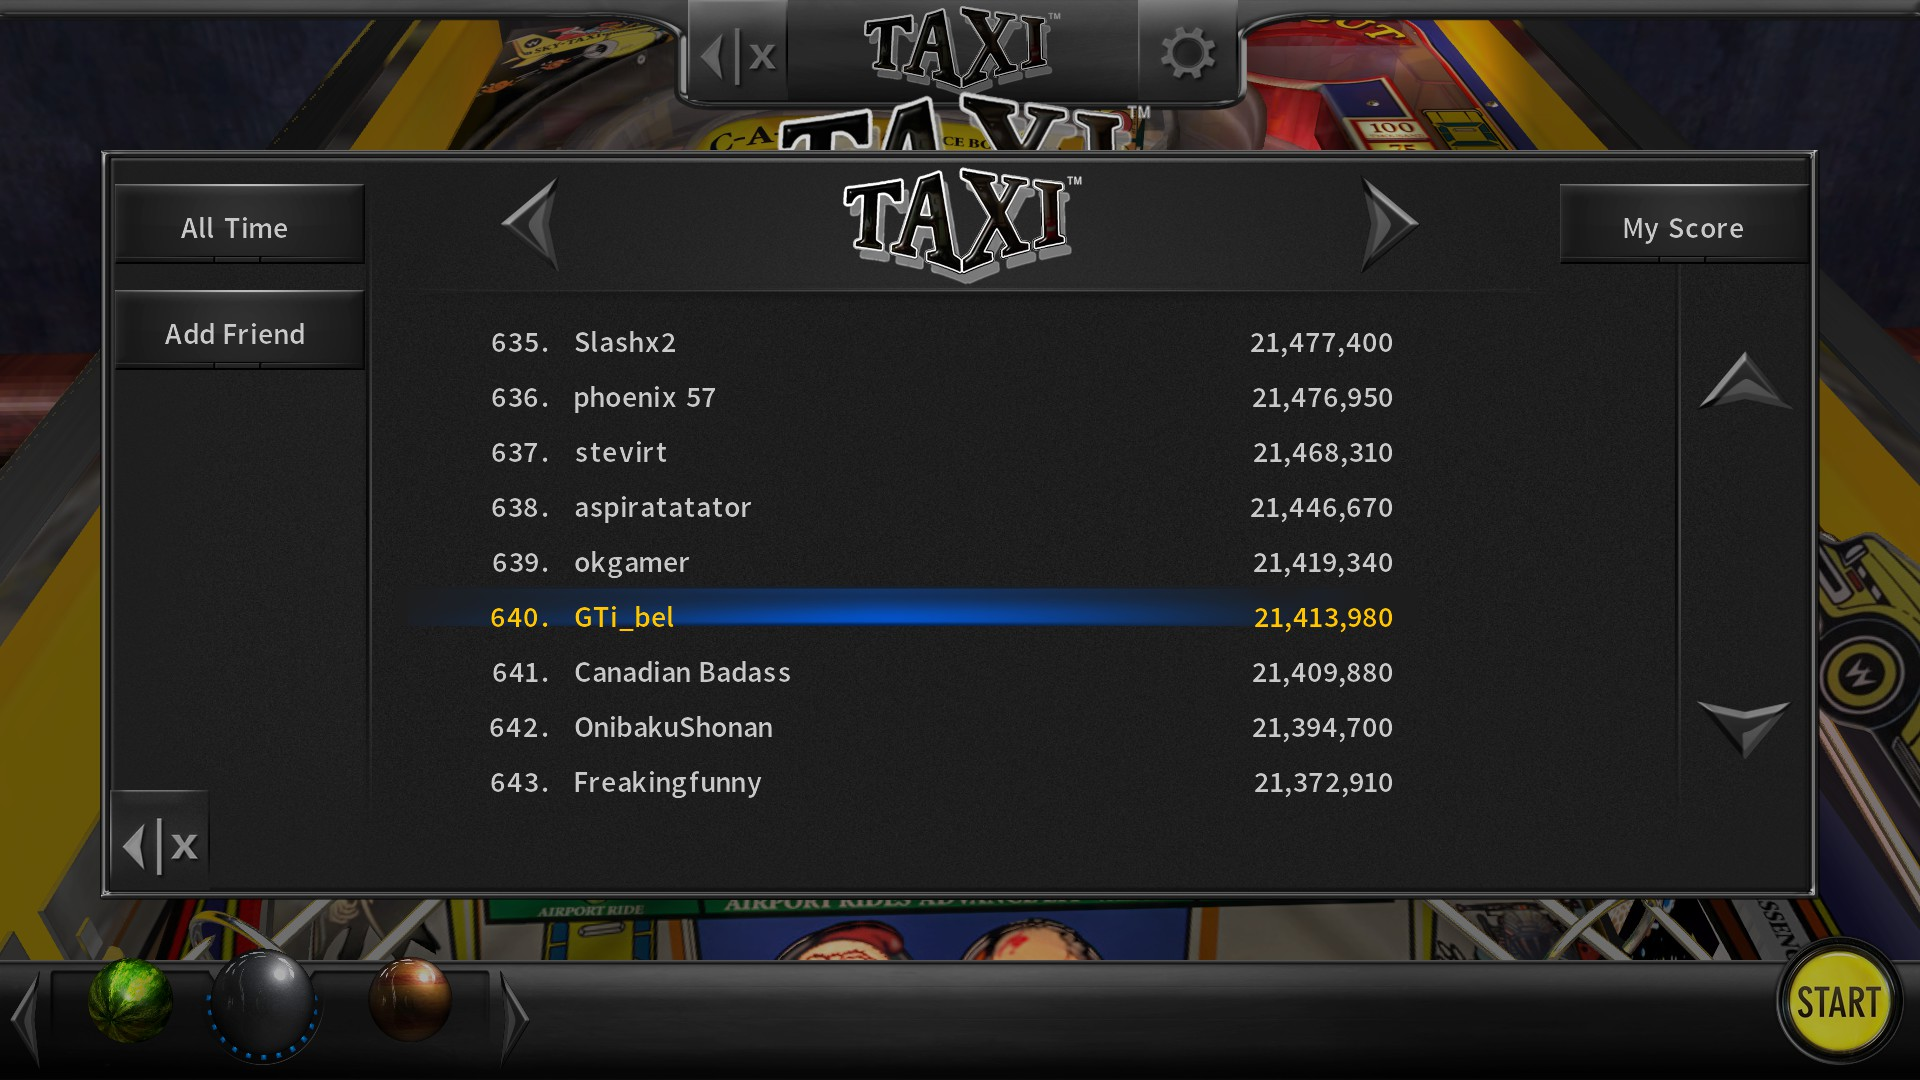 GTibel: Pinball Arcade: Taxi (PC) 21,413,980 points on 2020-07-17 04:41:17